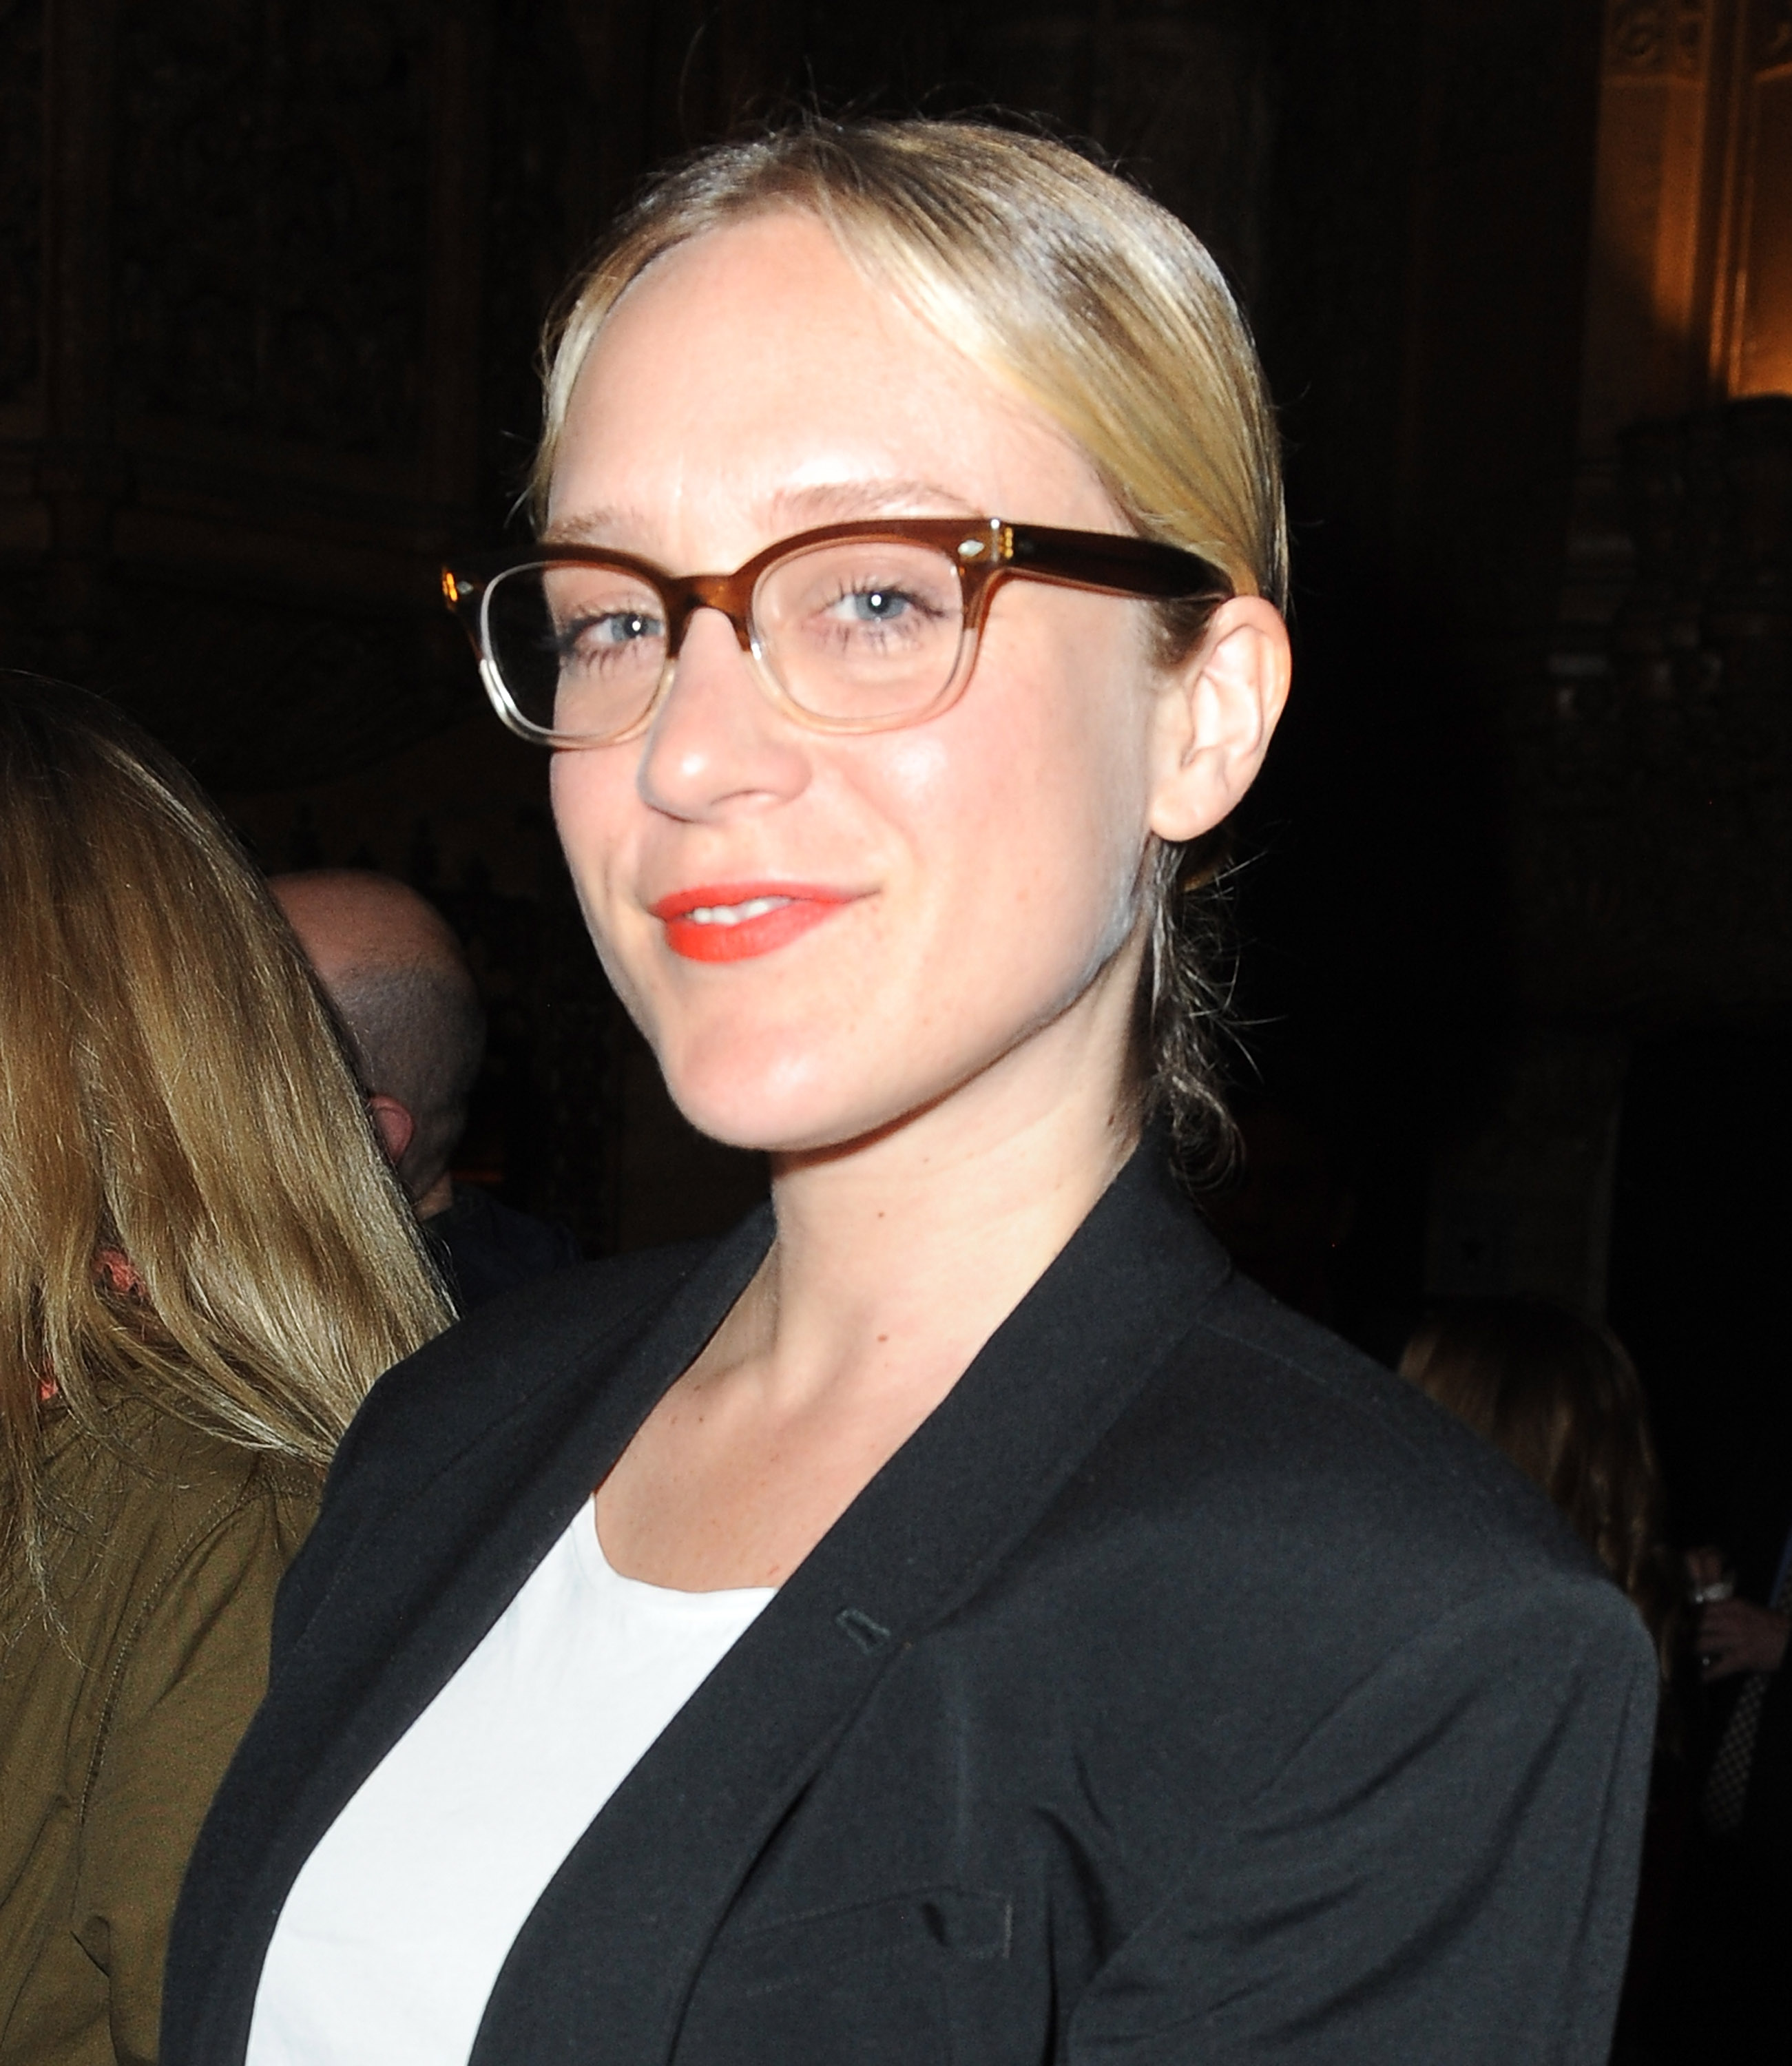 trendy reading glasses pn64  Kate Winslet in Glasses at the 2016 Academy Awards